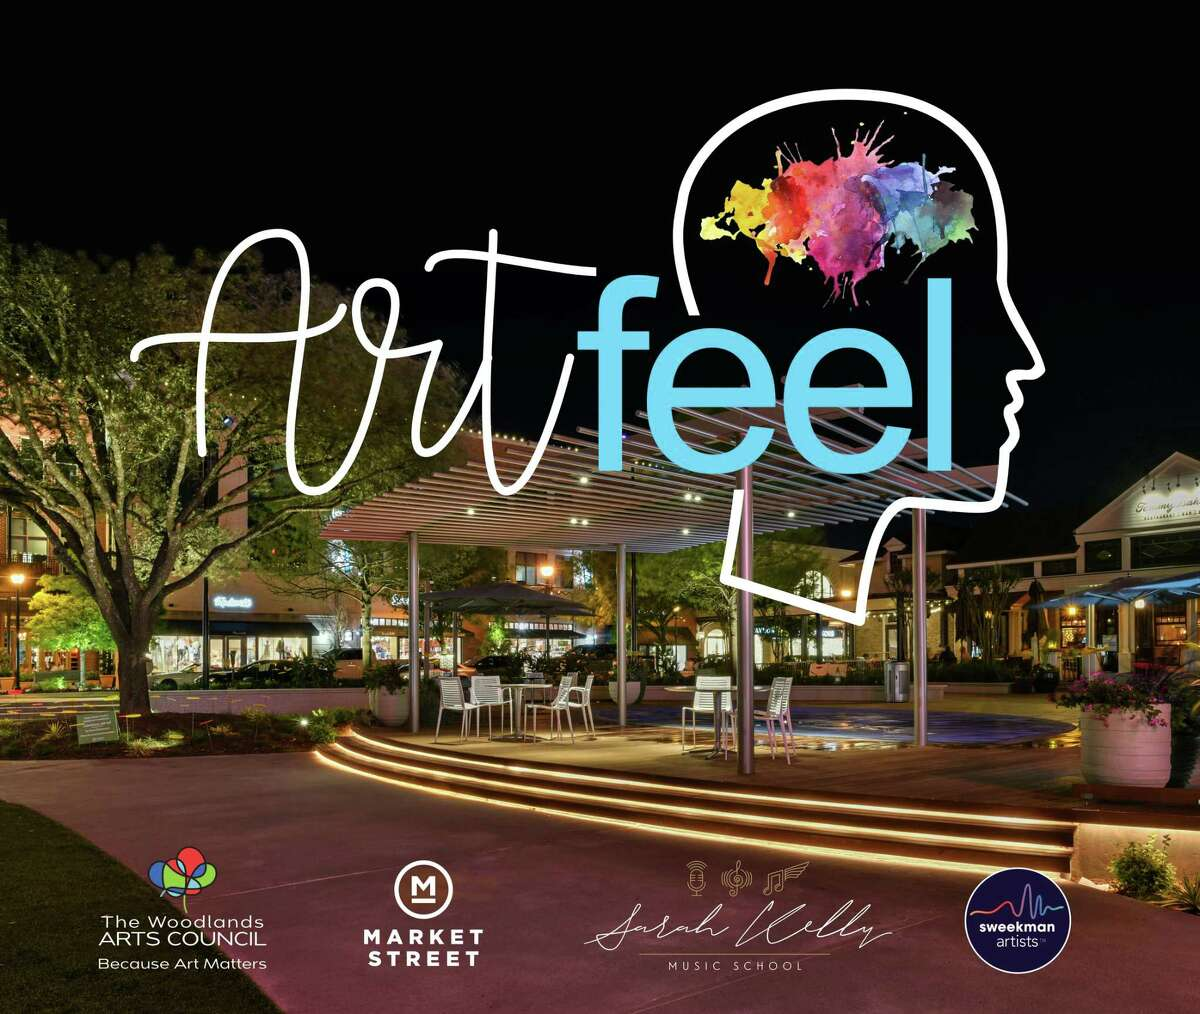 Artists of all sorts will wait until Wednesday night, March 10, for the return of Artfeel - the traditional night of spoken word, dance, art and other forms of communication that has been on hiatus for months due to the coronavirus pandemic. The first Artfeel of 2021 will now be hosted March 10 at the Central Park space inside shopping destination Market Street in The Woodlands, beginning at 7 p.m. and cotinuing for several hours, said organizer Nickole Kerner Bobley. The event is free and COVID-19 safety protocols will be in place under the rules of Market Street and the event itself, she added.